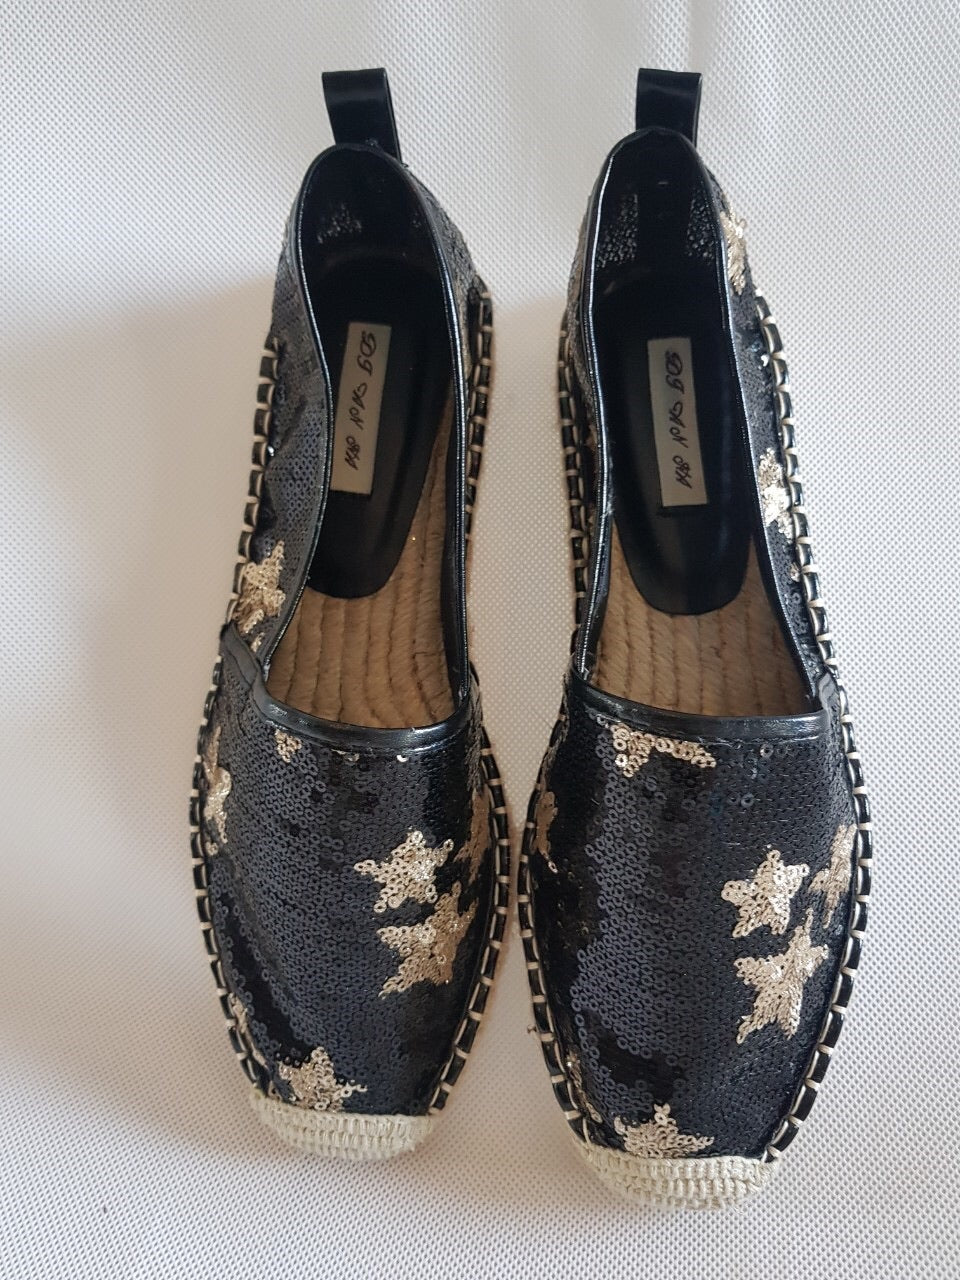 GSB-Black sequins gold star espadrilles **recommend sizing down one full size**